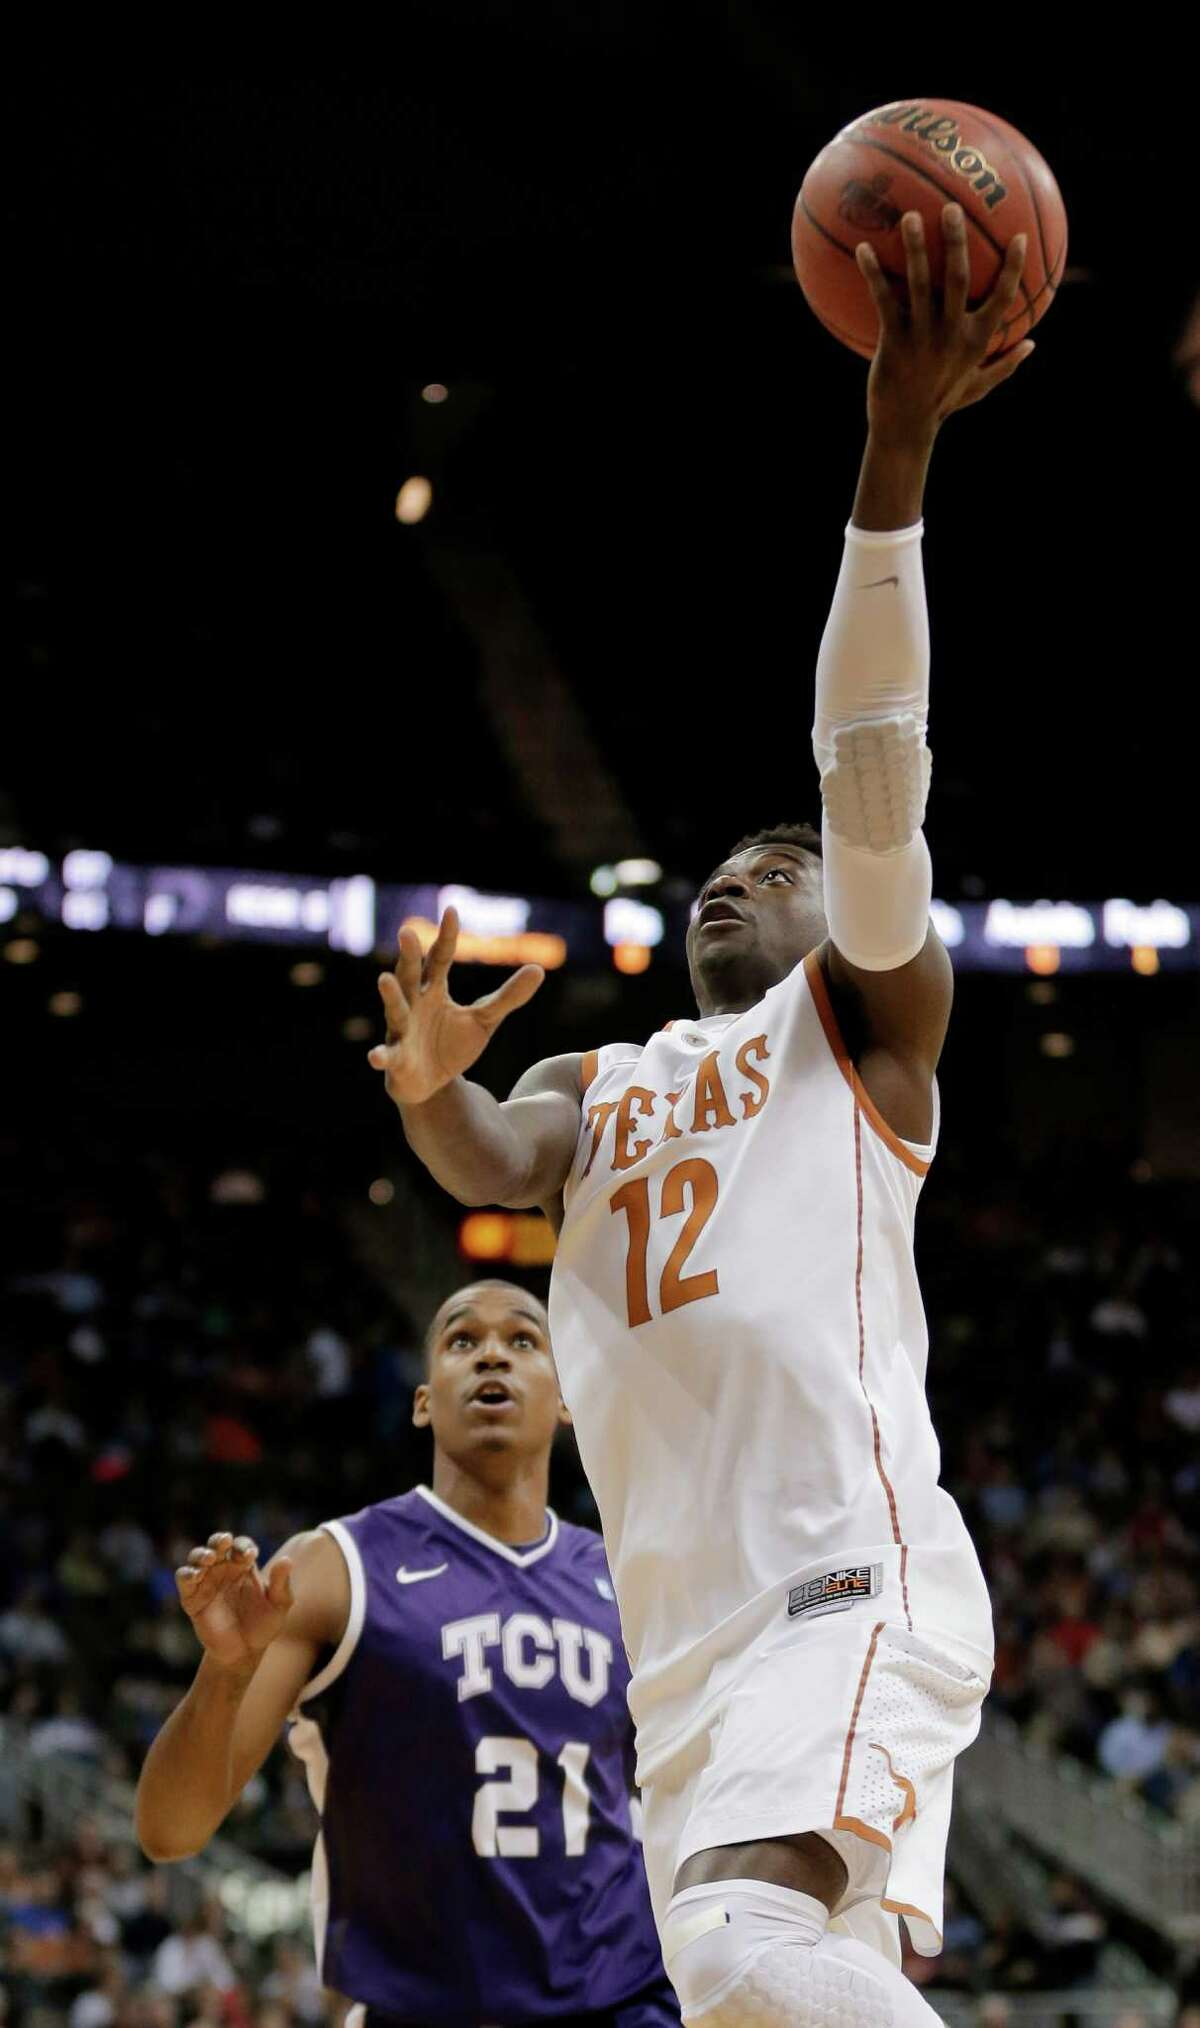 Texas guard Myck Kabongo (12) gets past TCU guard Nate Butler Lind (21) to put up a shot during the first half an NCAA college basketball game in the Big 12 men's tournament Wednesday, March 13, 2013, in Kansas City, Mo. (AP Photo/Charlie Riedel)